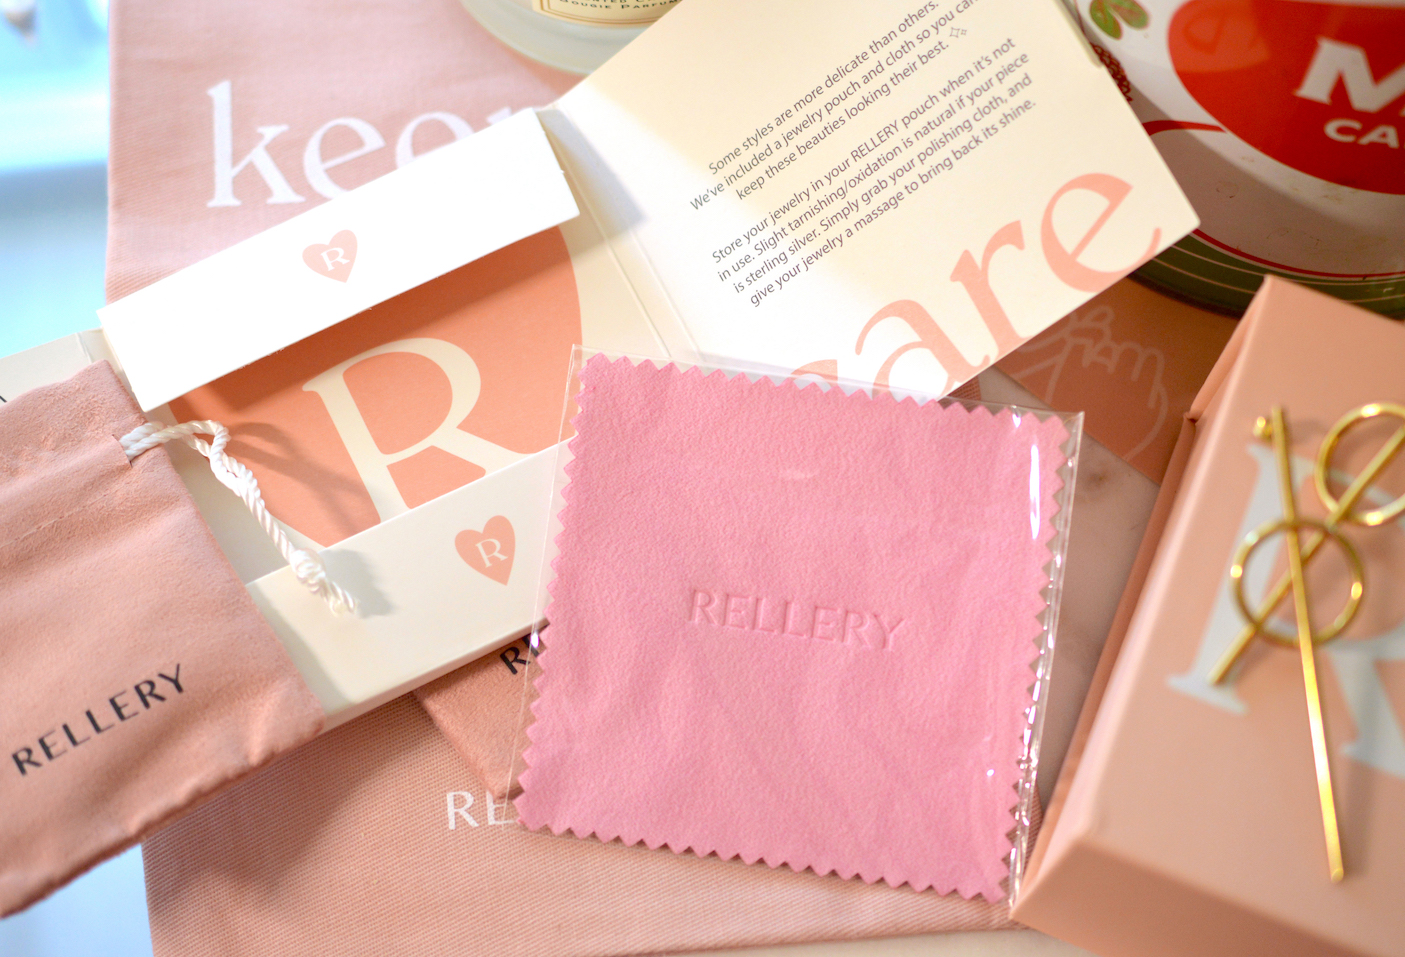 Rellery Review Cleaning Cloth